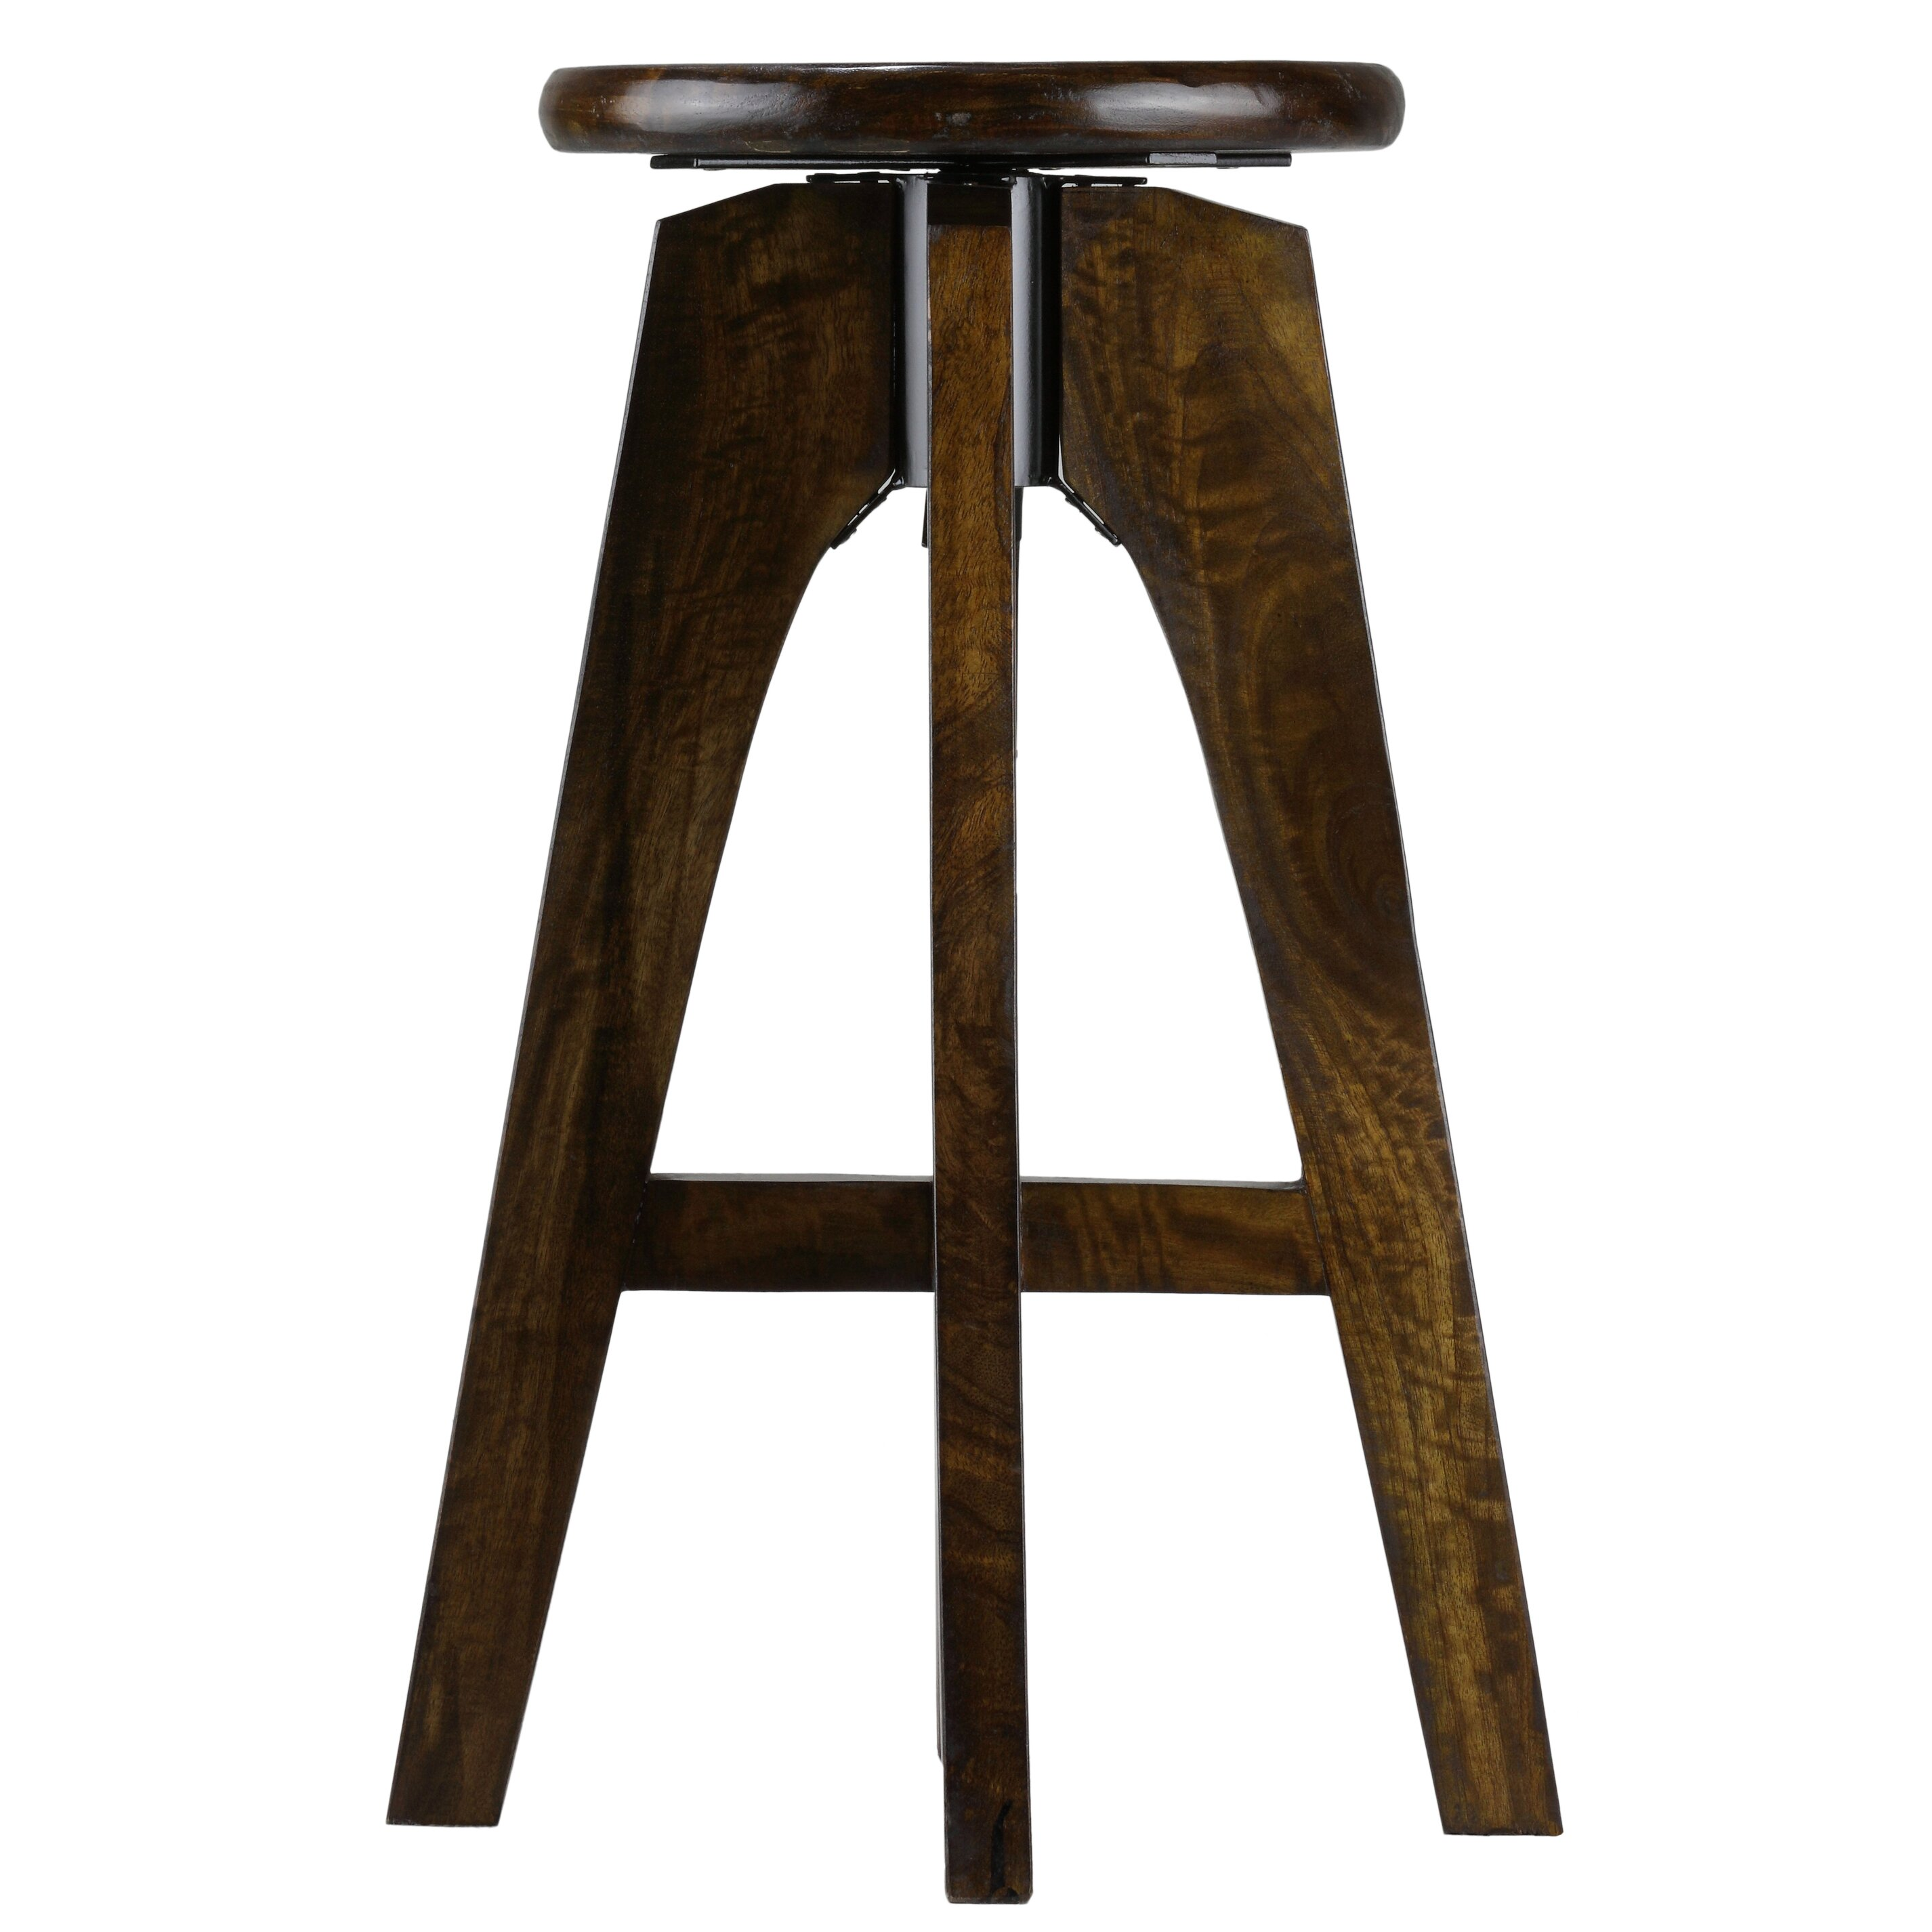 Baredecor Adjustable Height Swivel Bar Stool Wayfair Ca